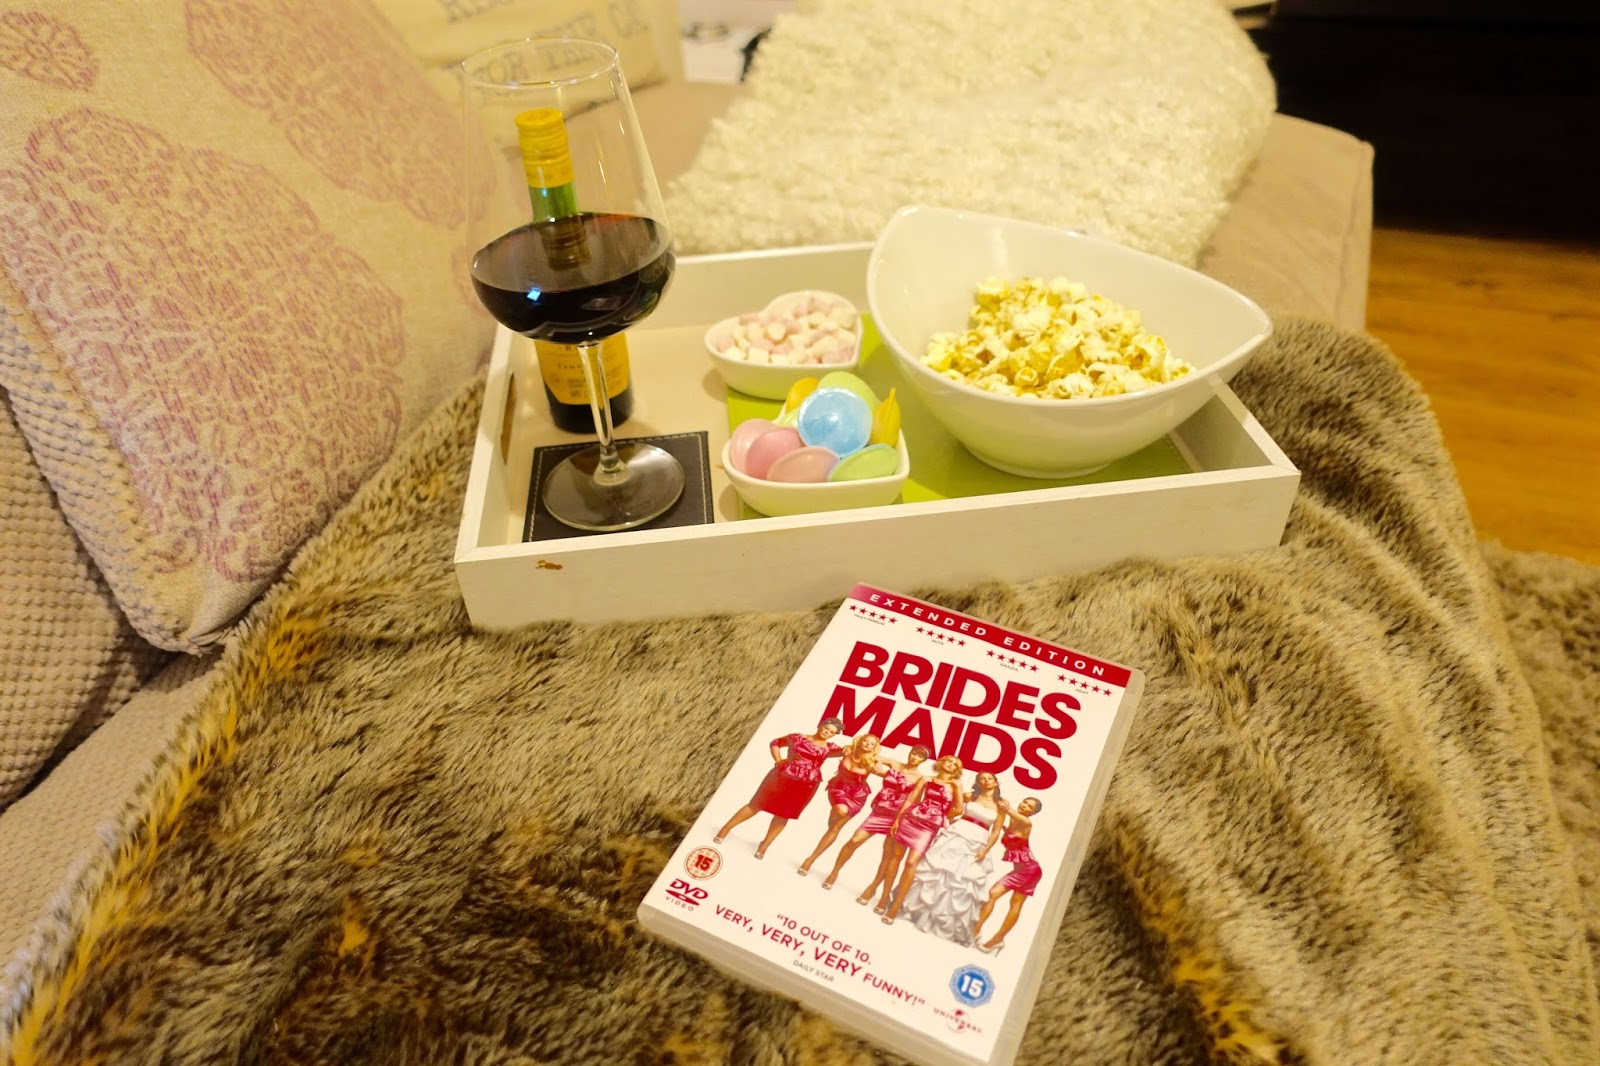 favourite film bridesmaids movie night